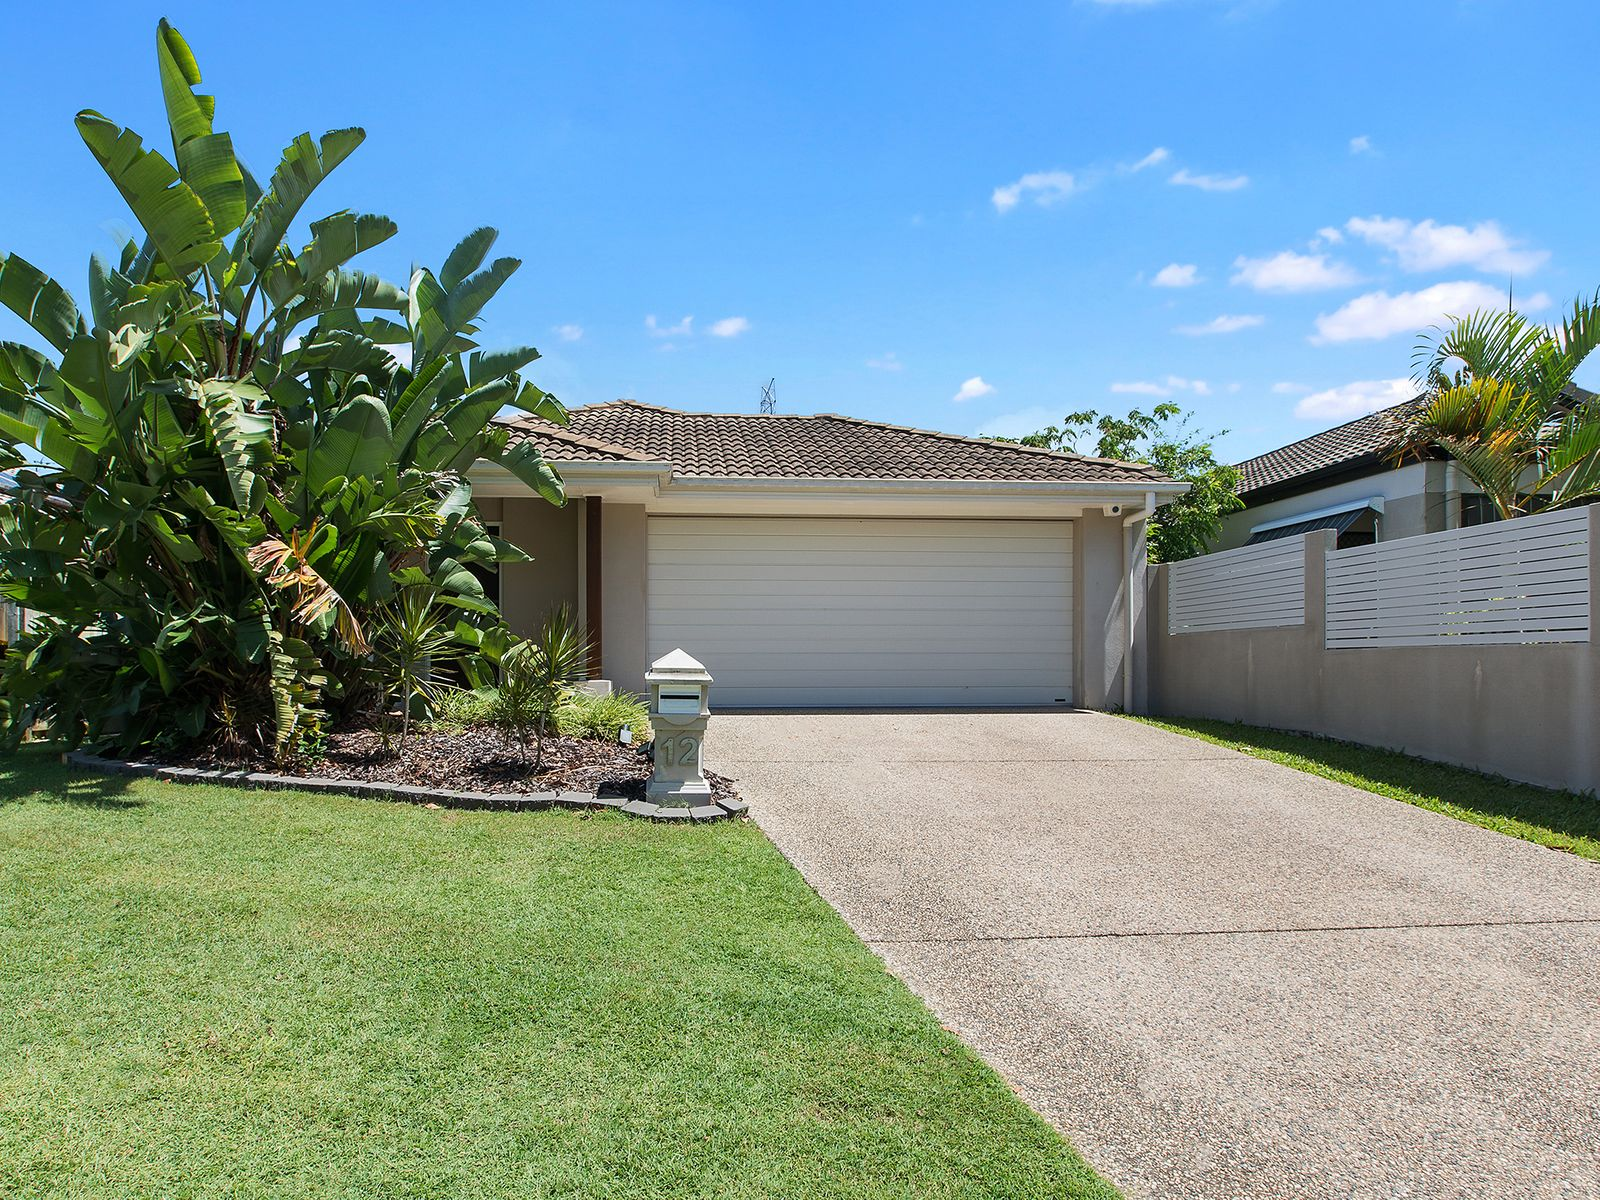 12 Alpinia Street, Sippy Downs, QLD 4556